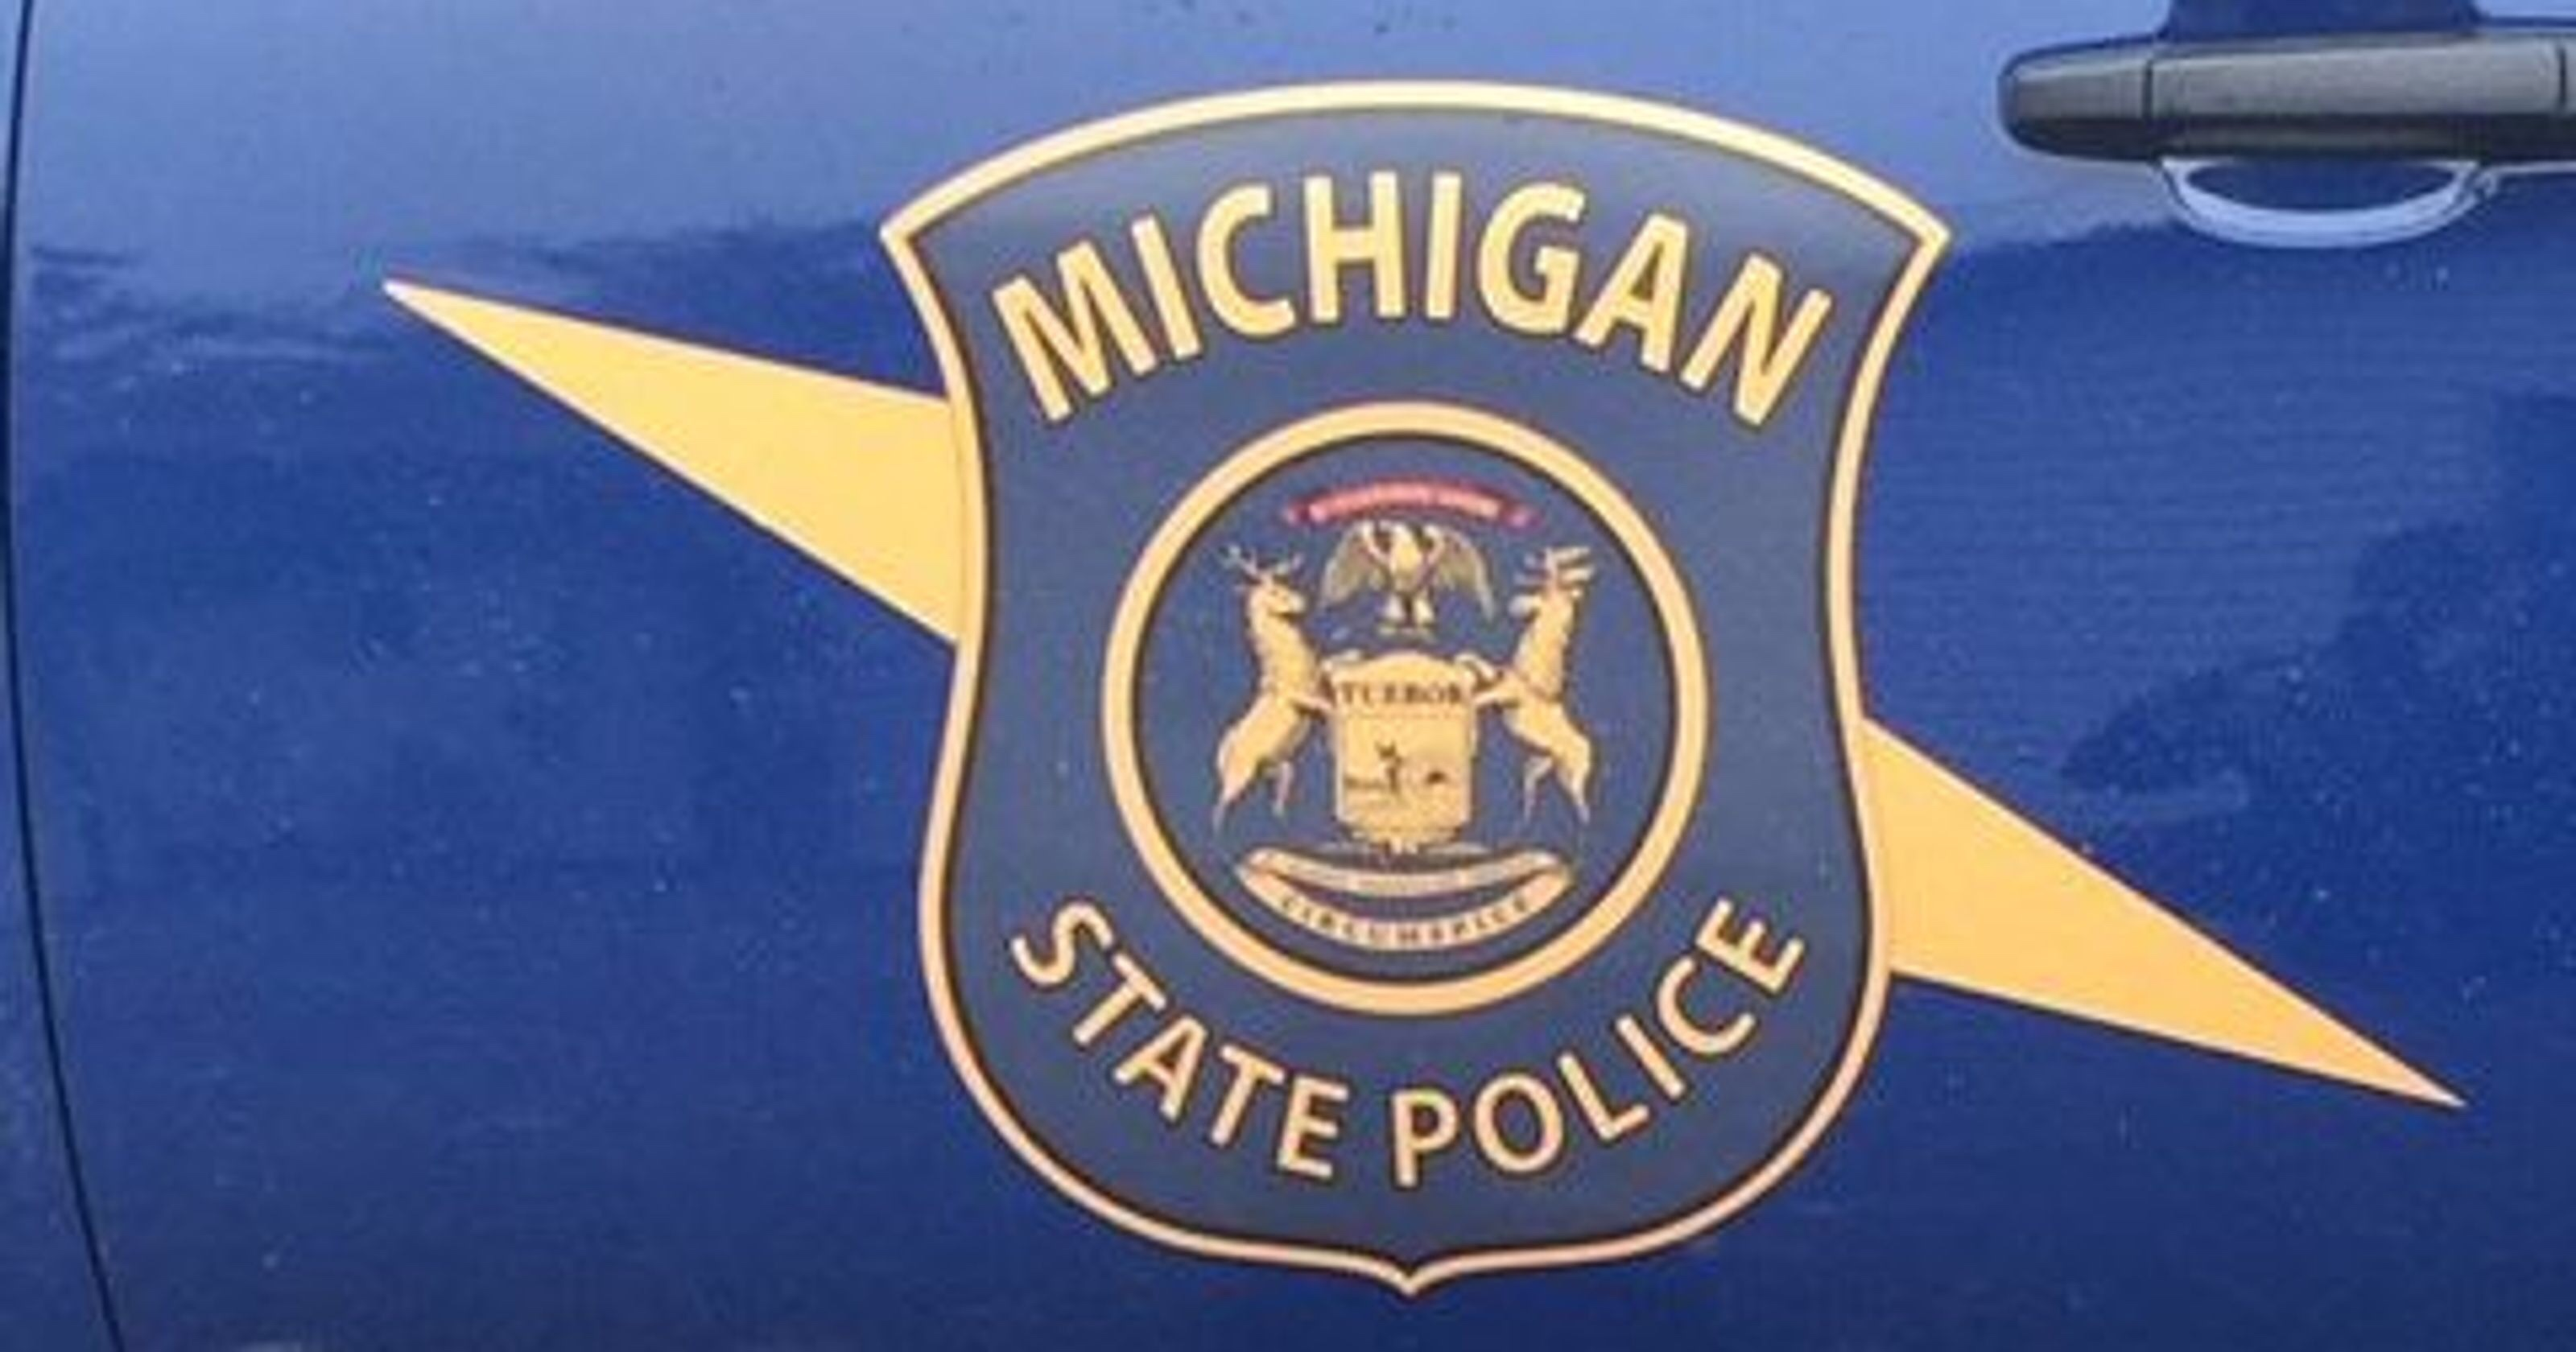 Michigan 'Move Over' law now in effect.